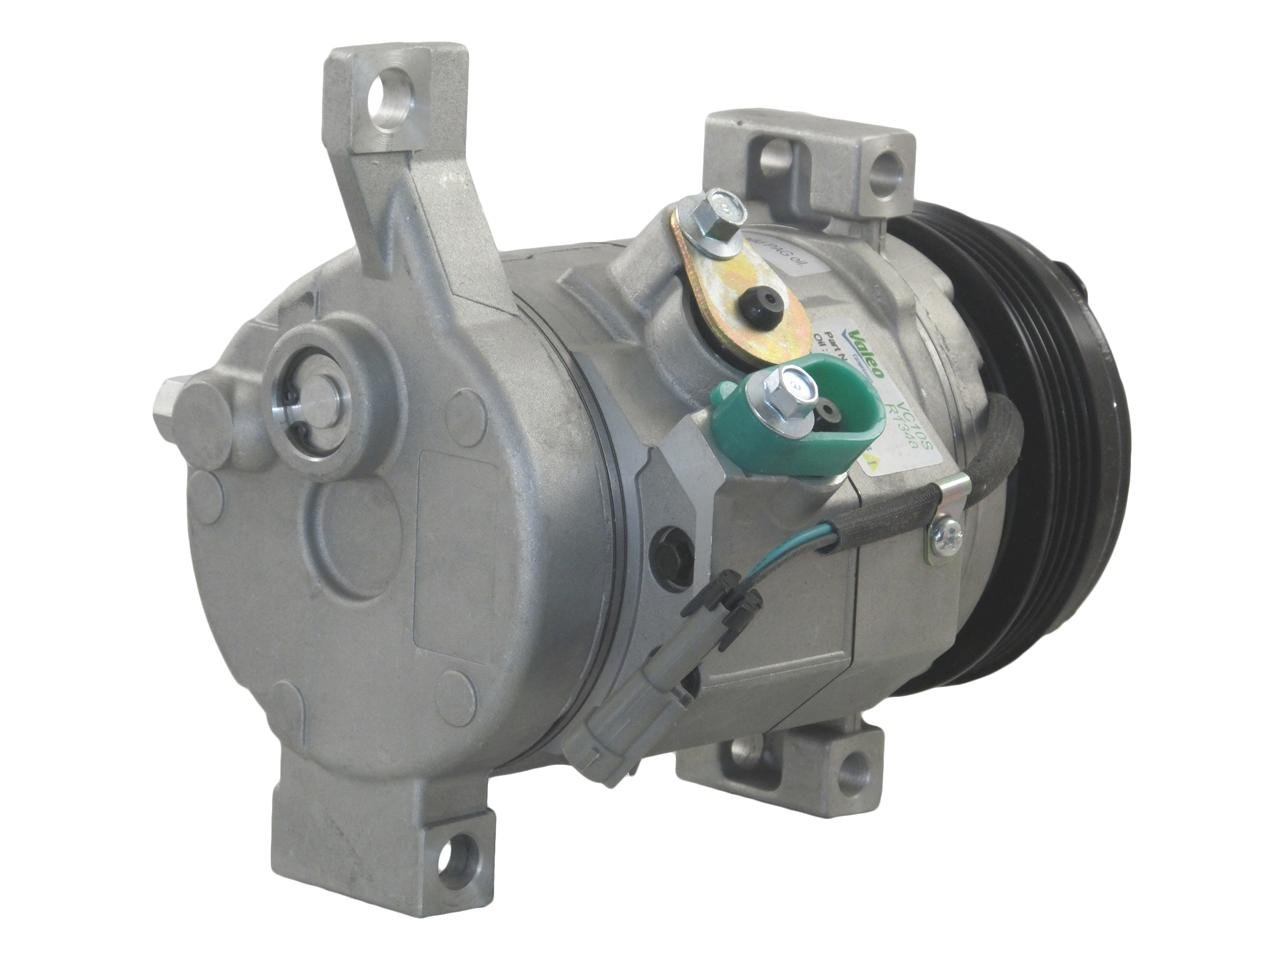 Amazon.com: NEW AC COMPRESSOR FITS 2000 2001 2002 2003 2004 CHEVROLET TAHOE 20-21711AM 77376 15-20941 15068854 15100337 1510033 638363 471-0316: Automotive